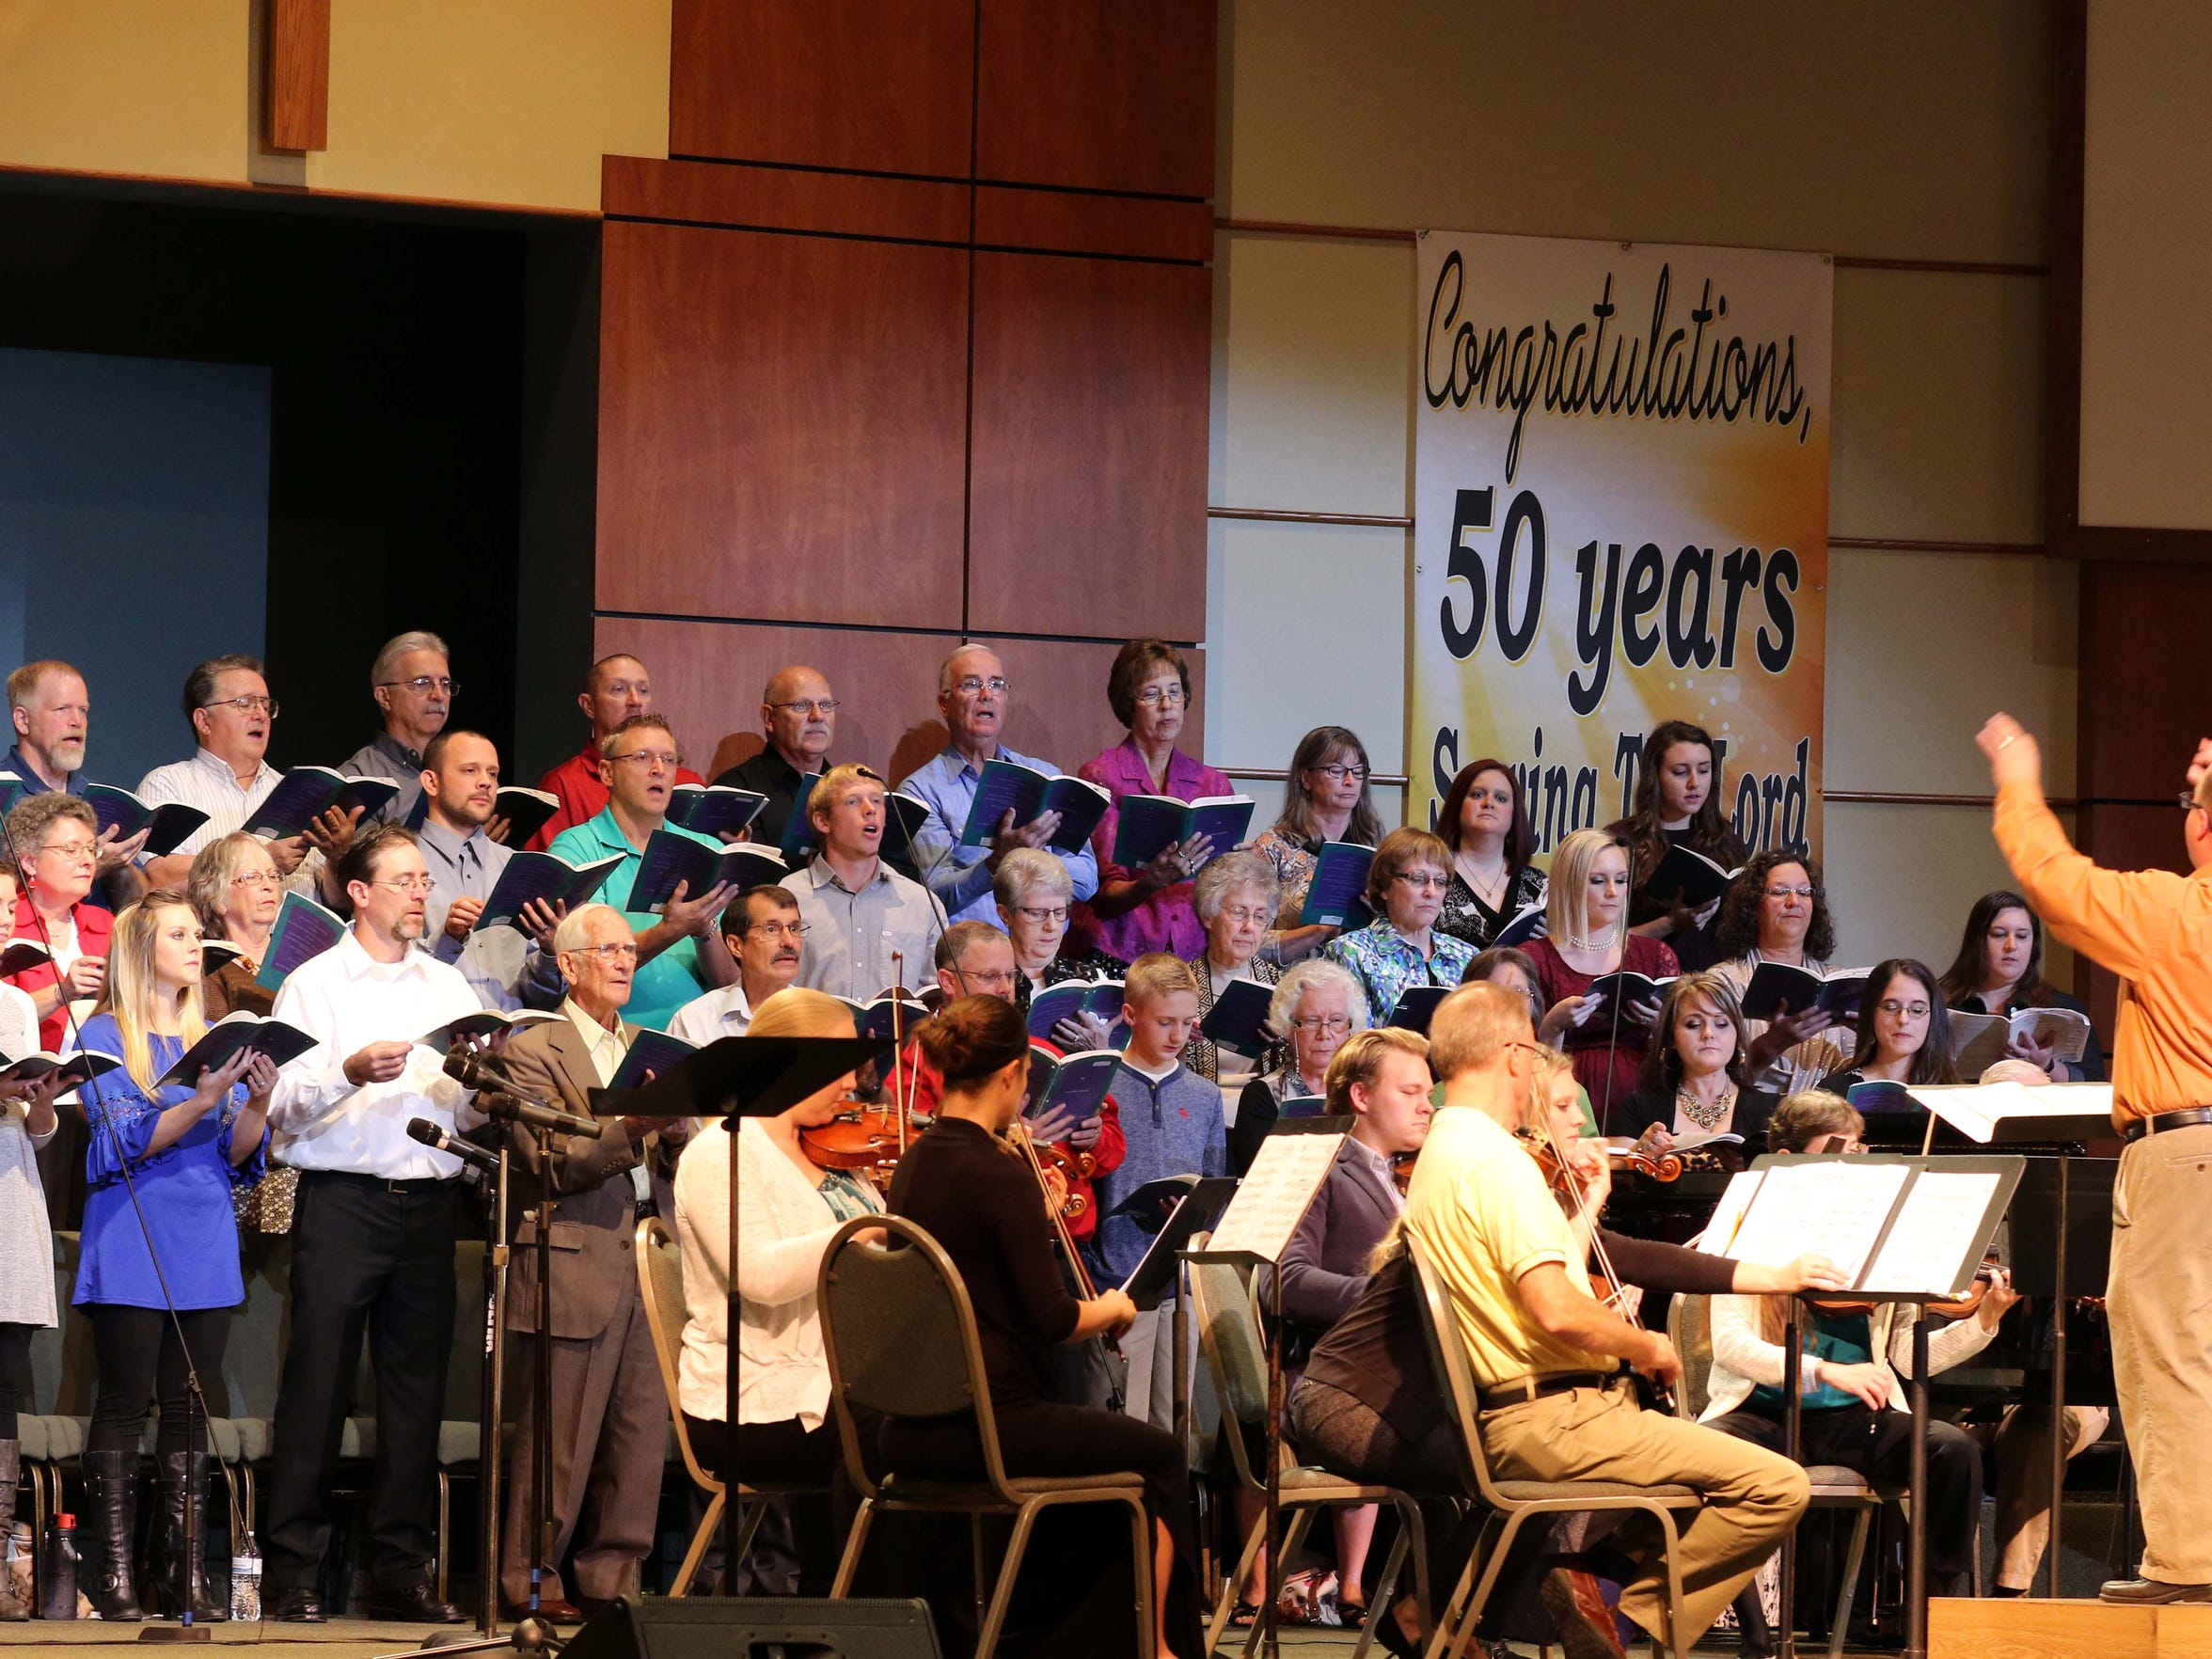 The choir at Calvary Baptist in Republic sings during